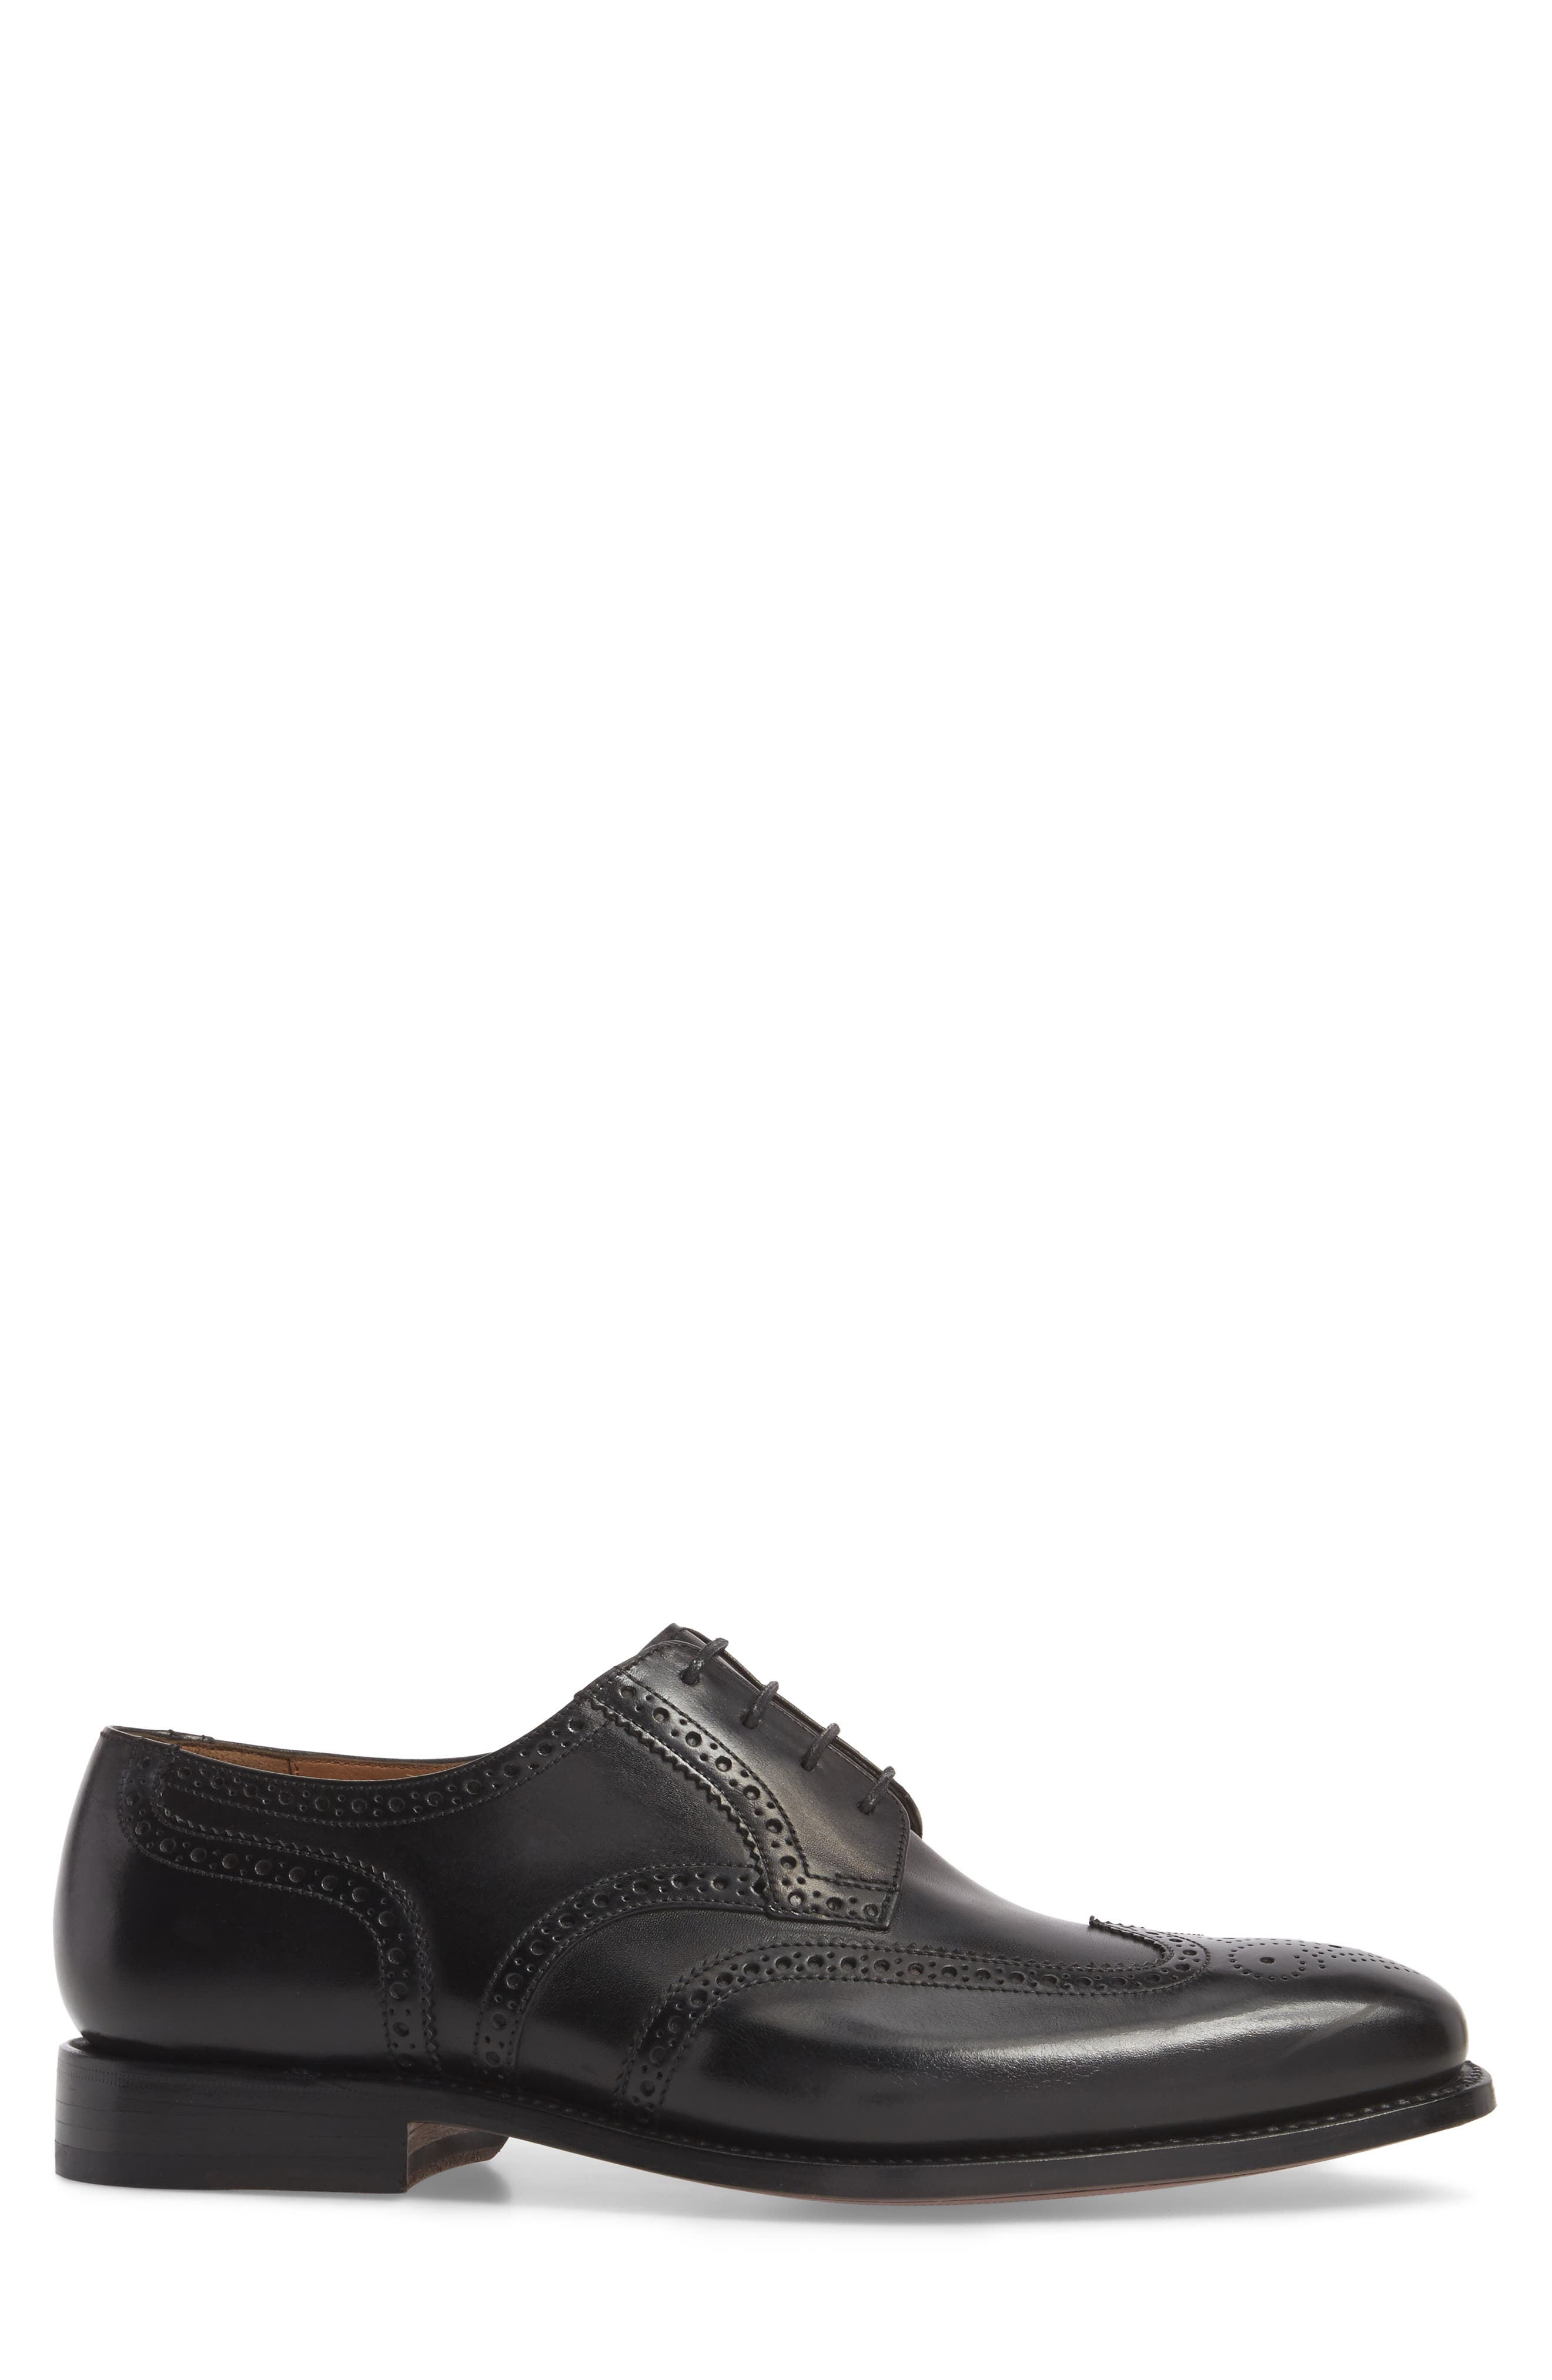 Cavallo Wingtip,                             Alternate thumbnail 3, color,                             BLACK LEATHER